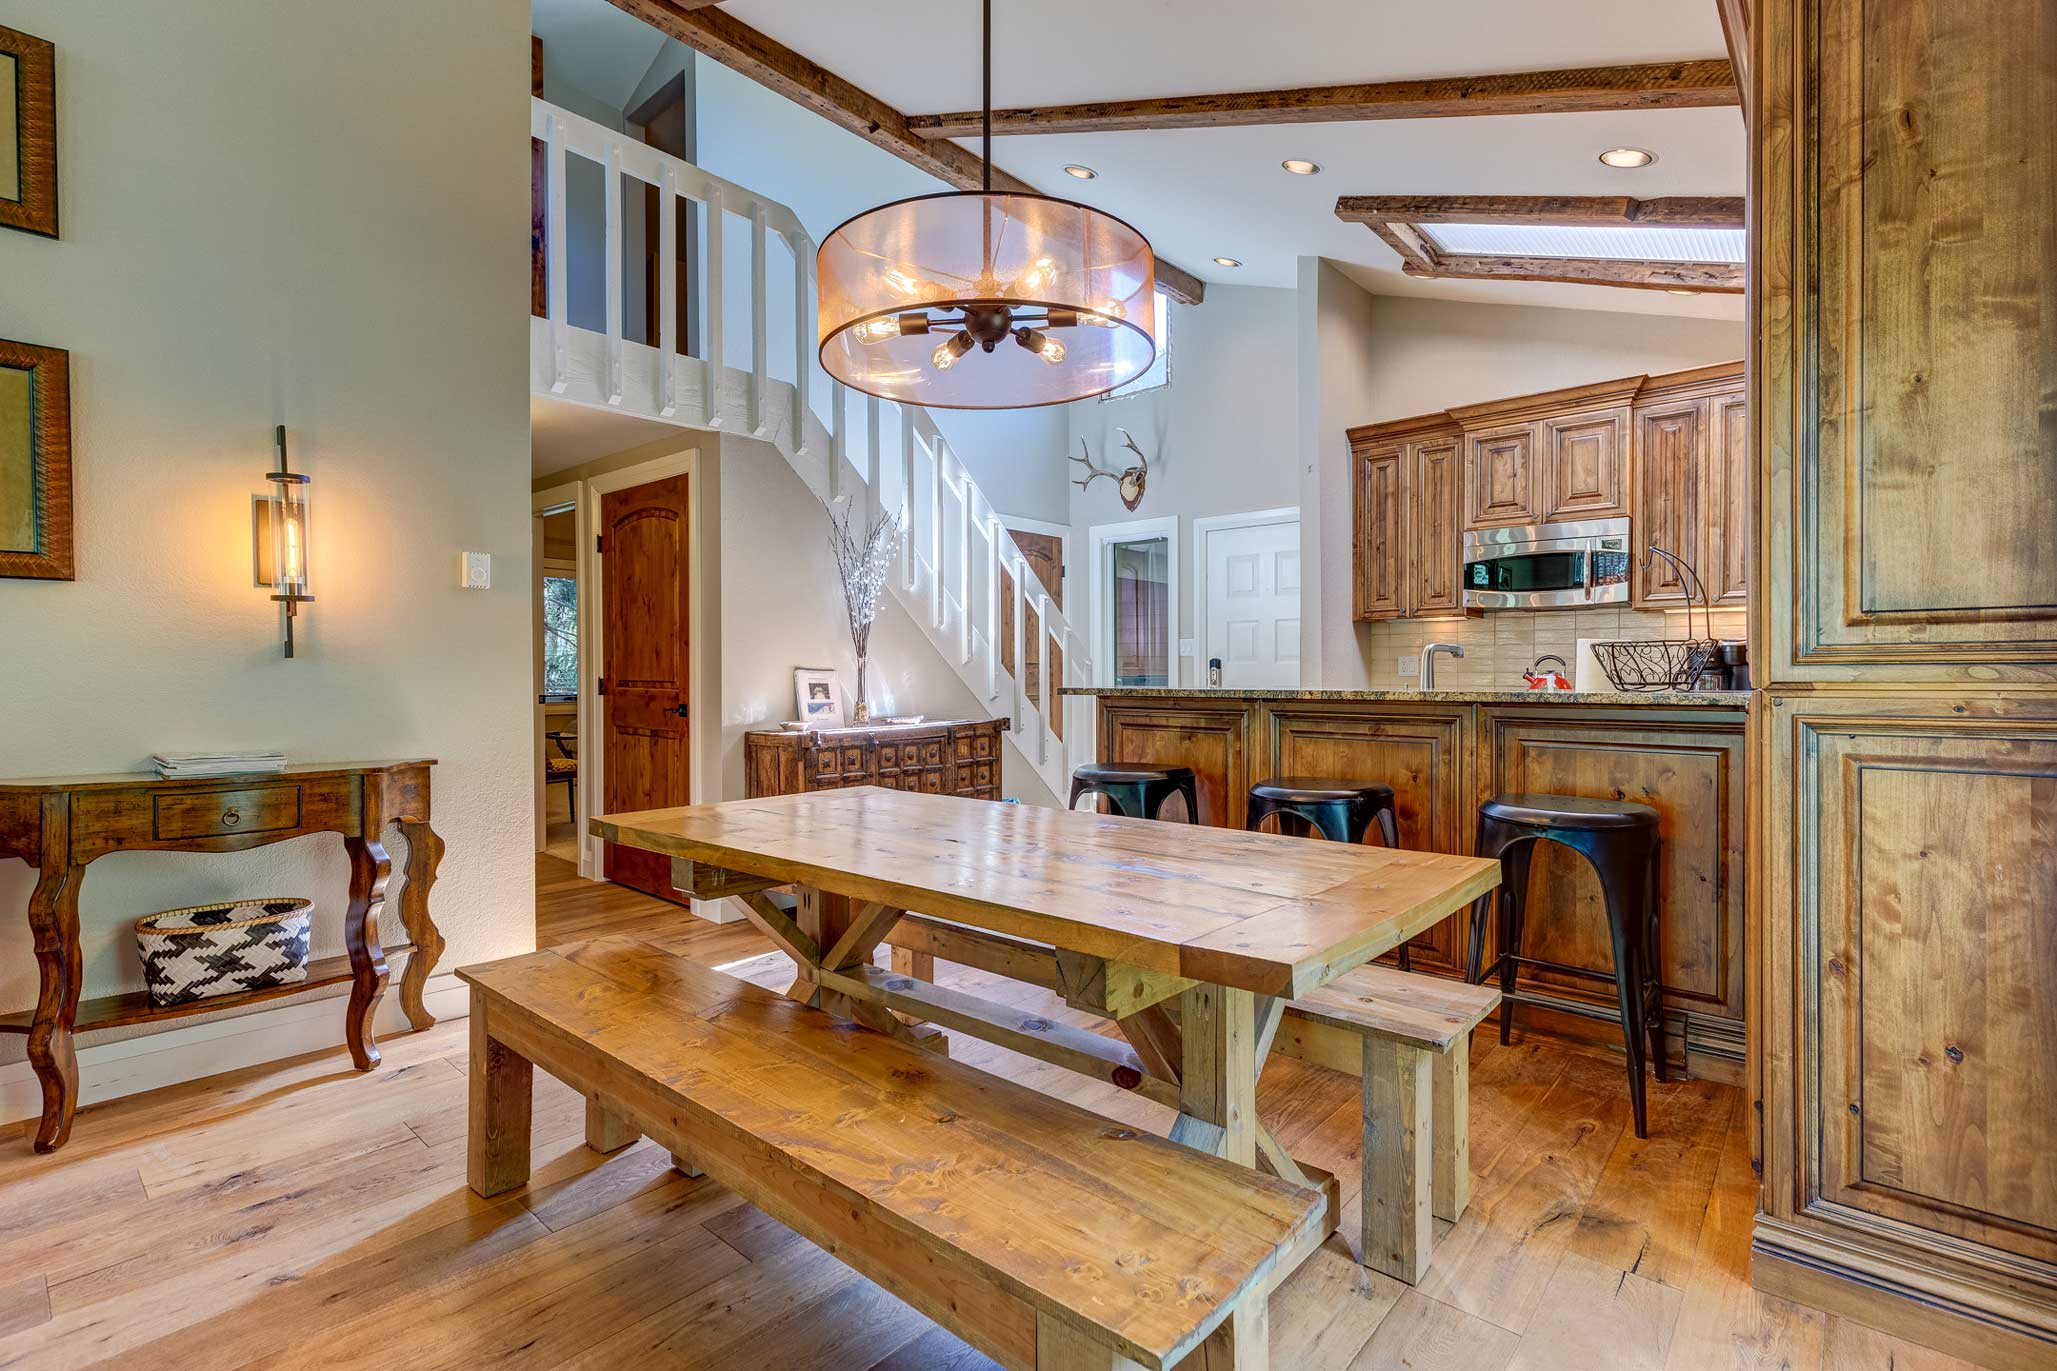 Chow down around this rustic farmhouse table with bench seating.